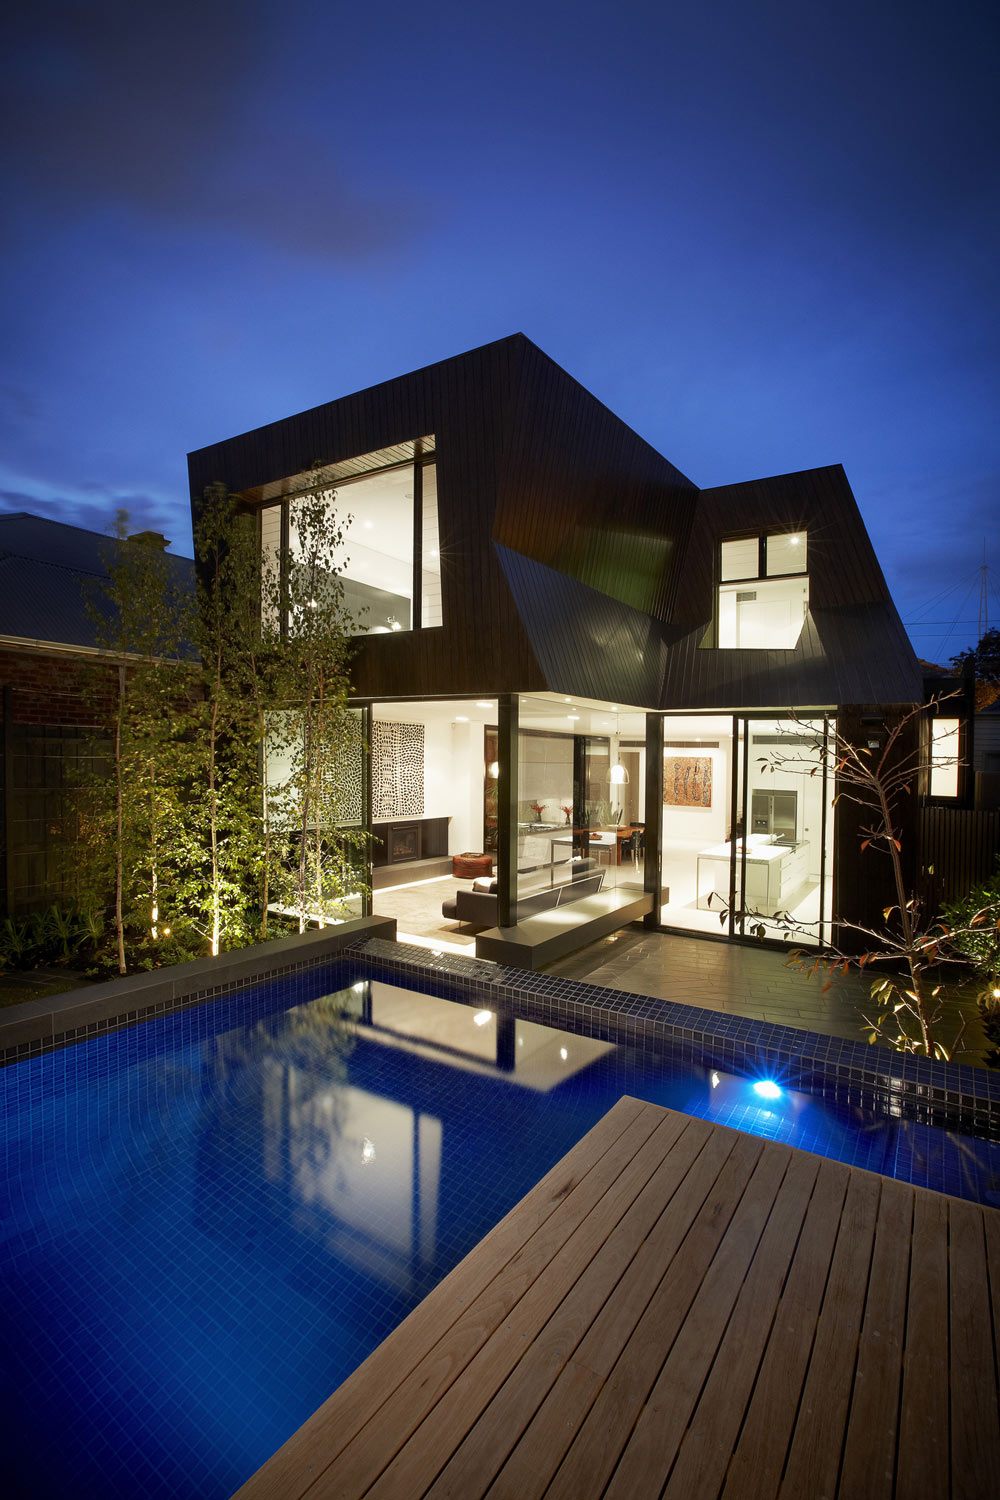 Enclave house in melbourne australia by bkk architects for House design with swimming pool